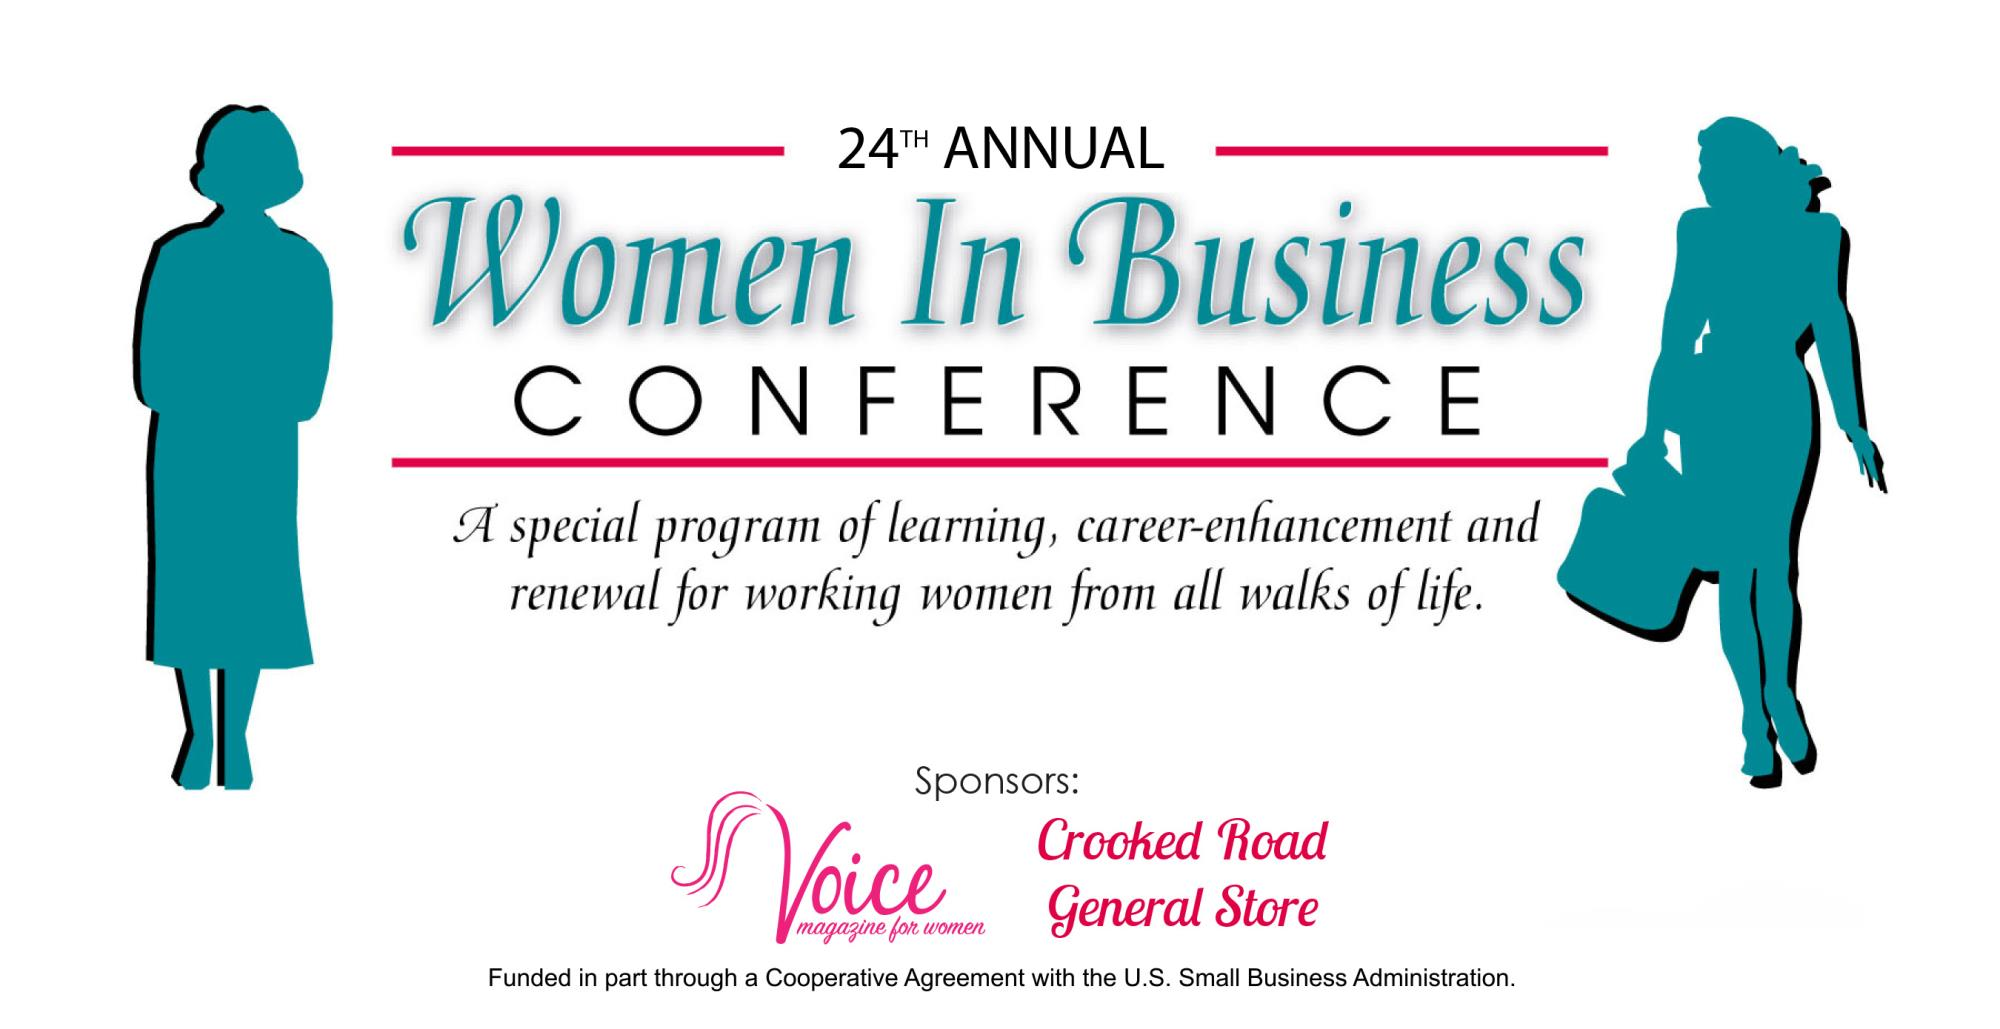 Women in Business Conference 2017